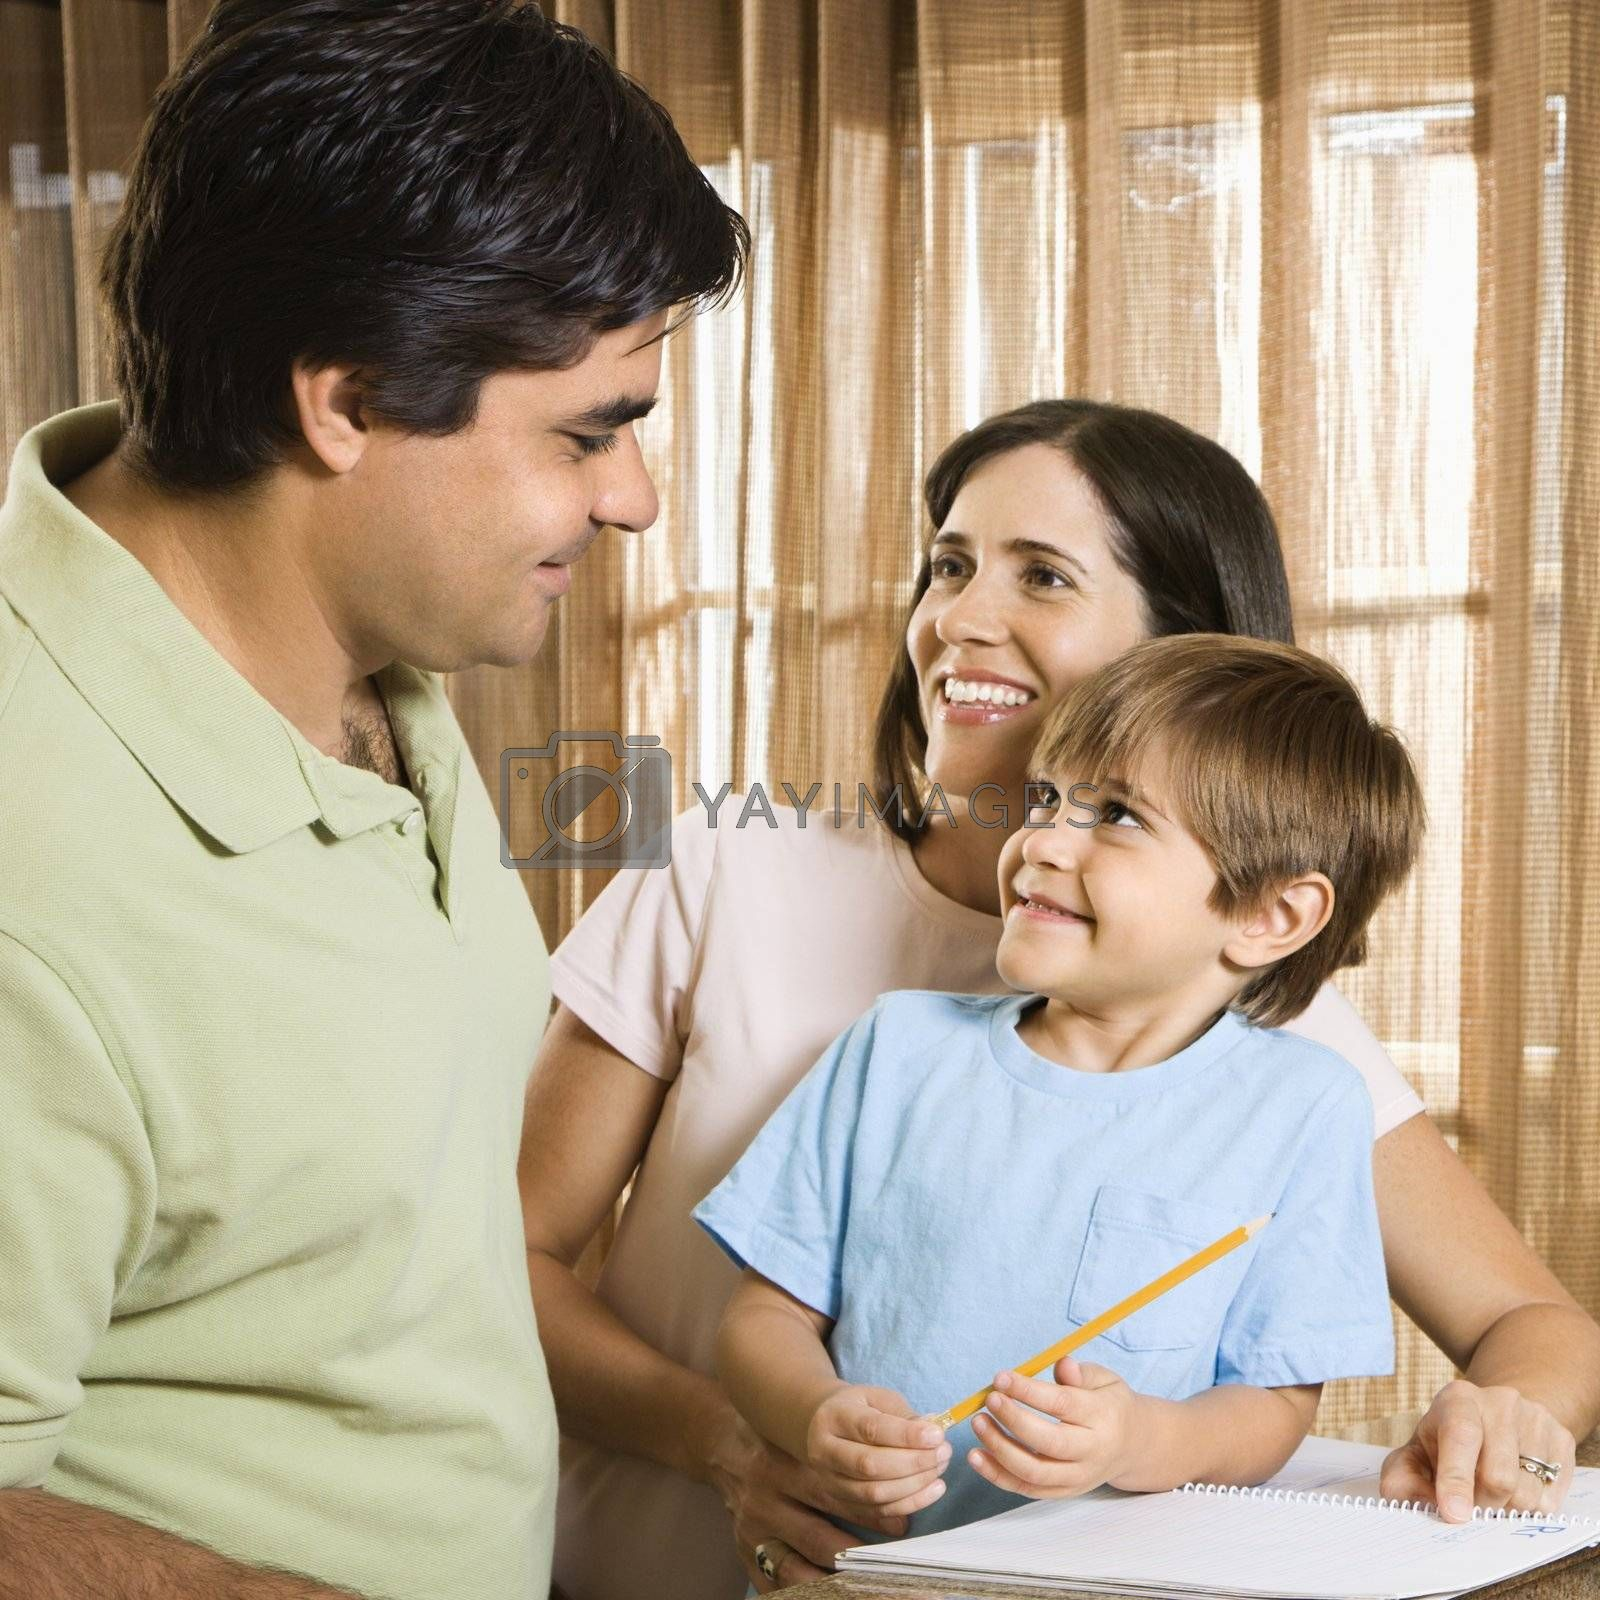 Hispanic parents making eye contact with son doing homework.